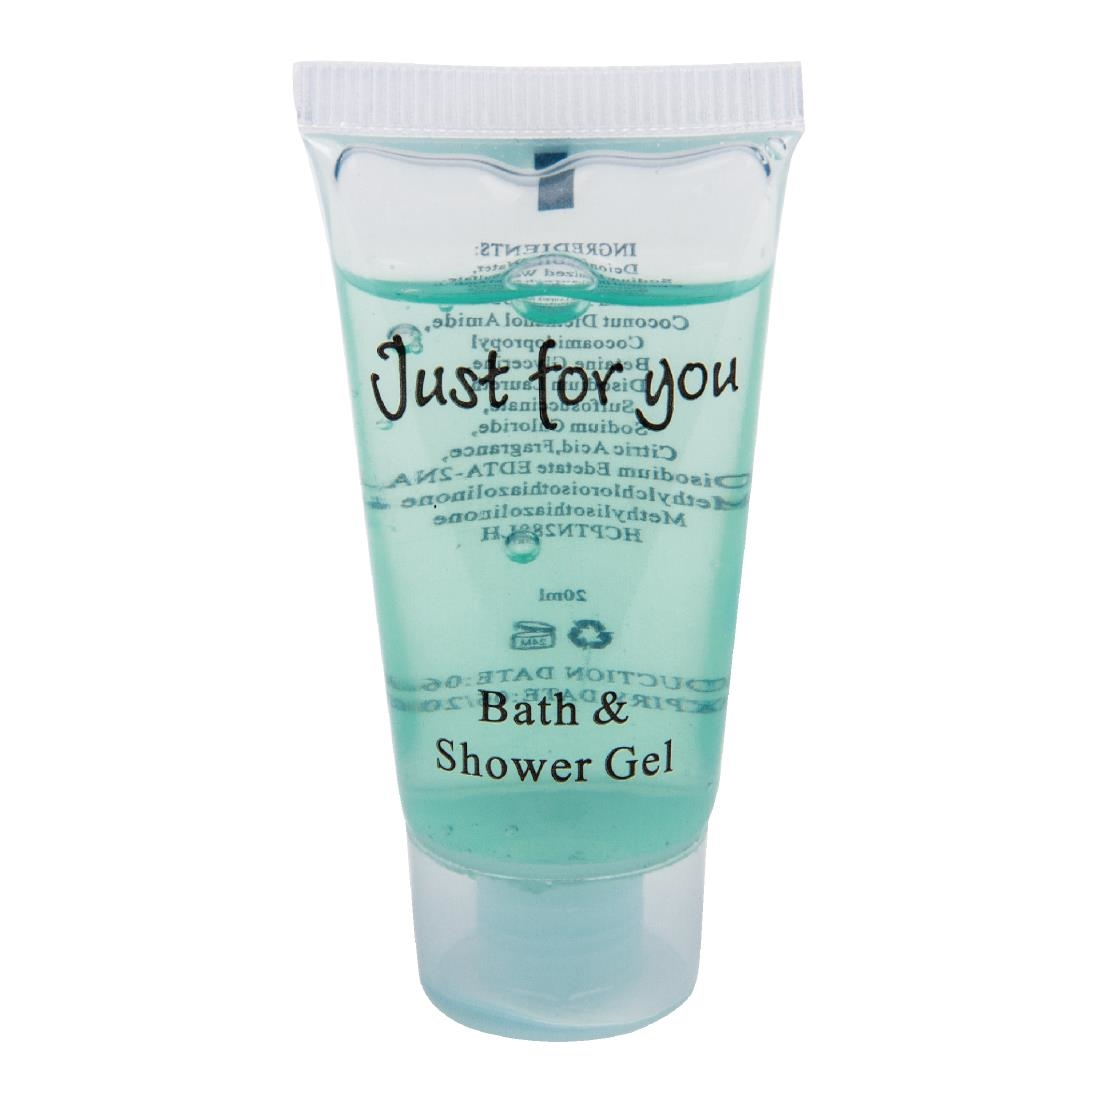 Just for You Bath and Shower Gel - GF949 - Buy Online at Nisbets